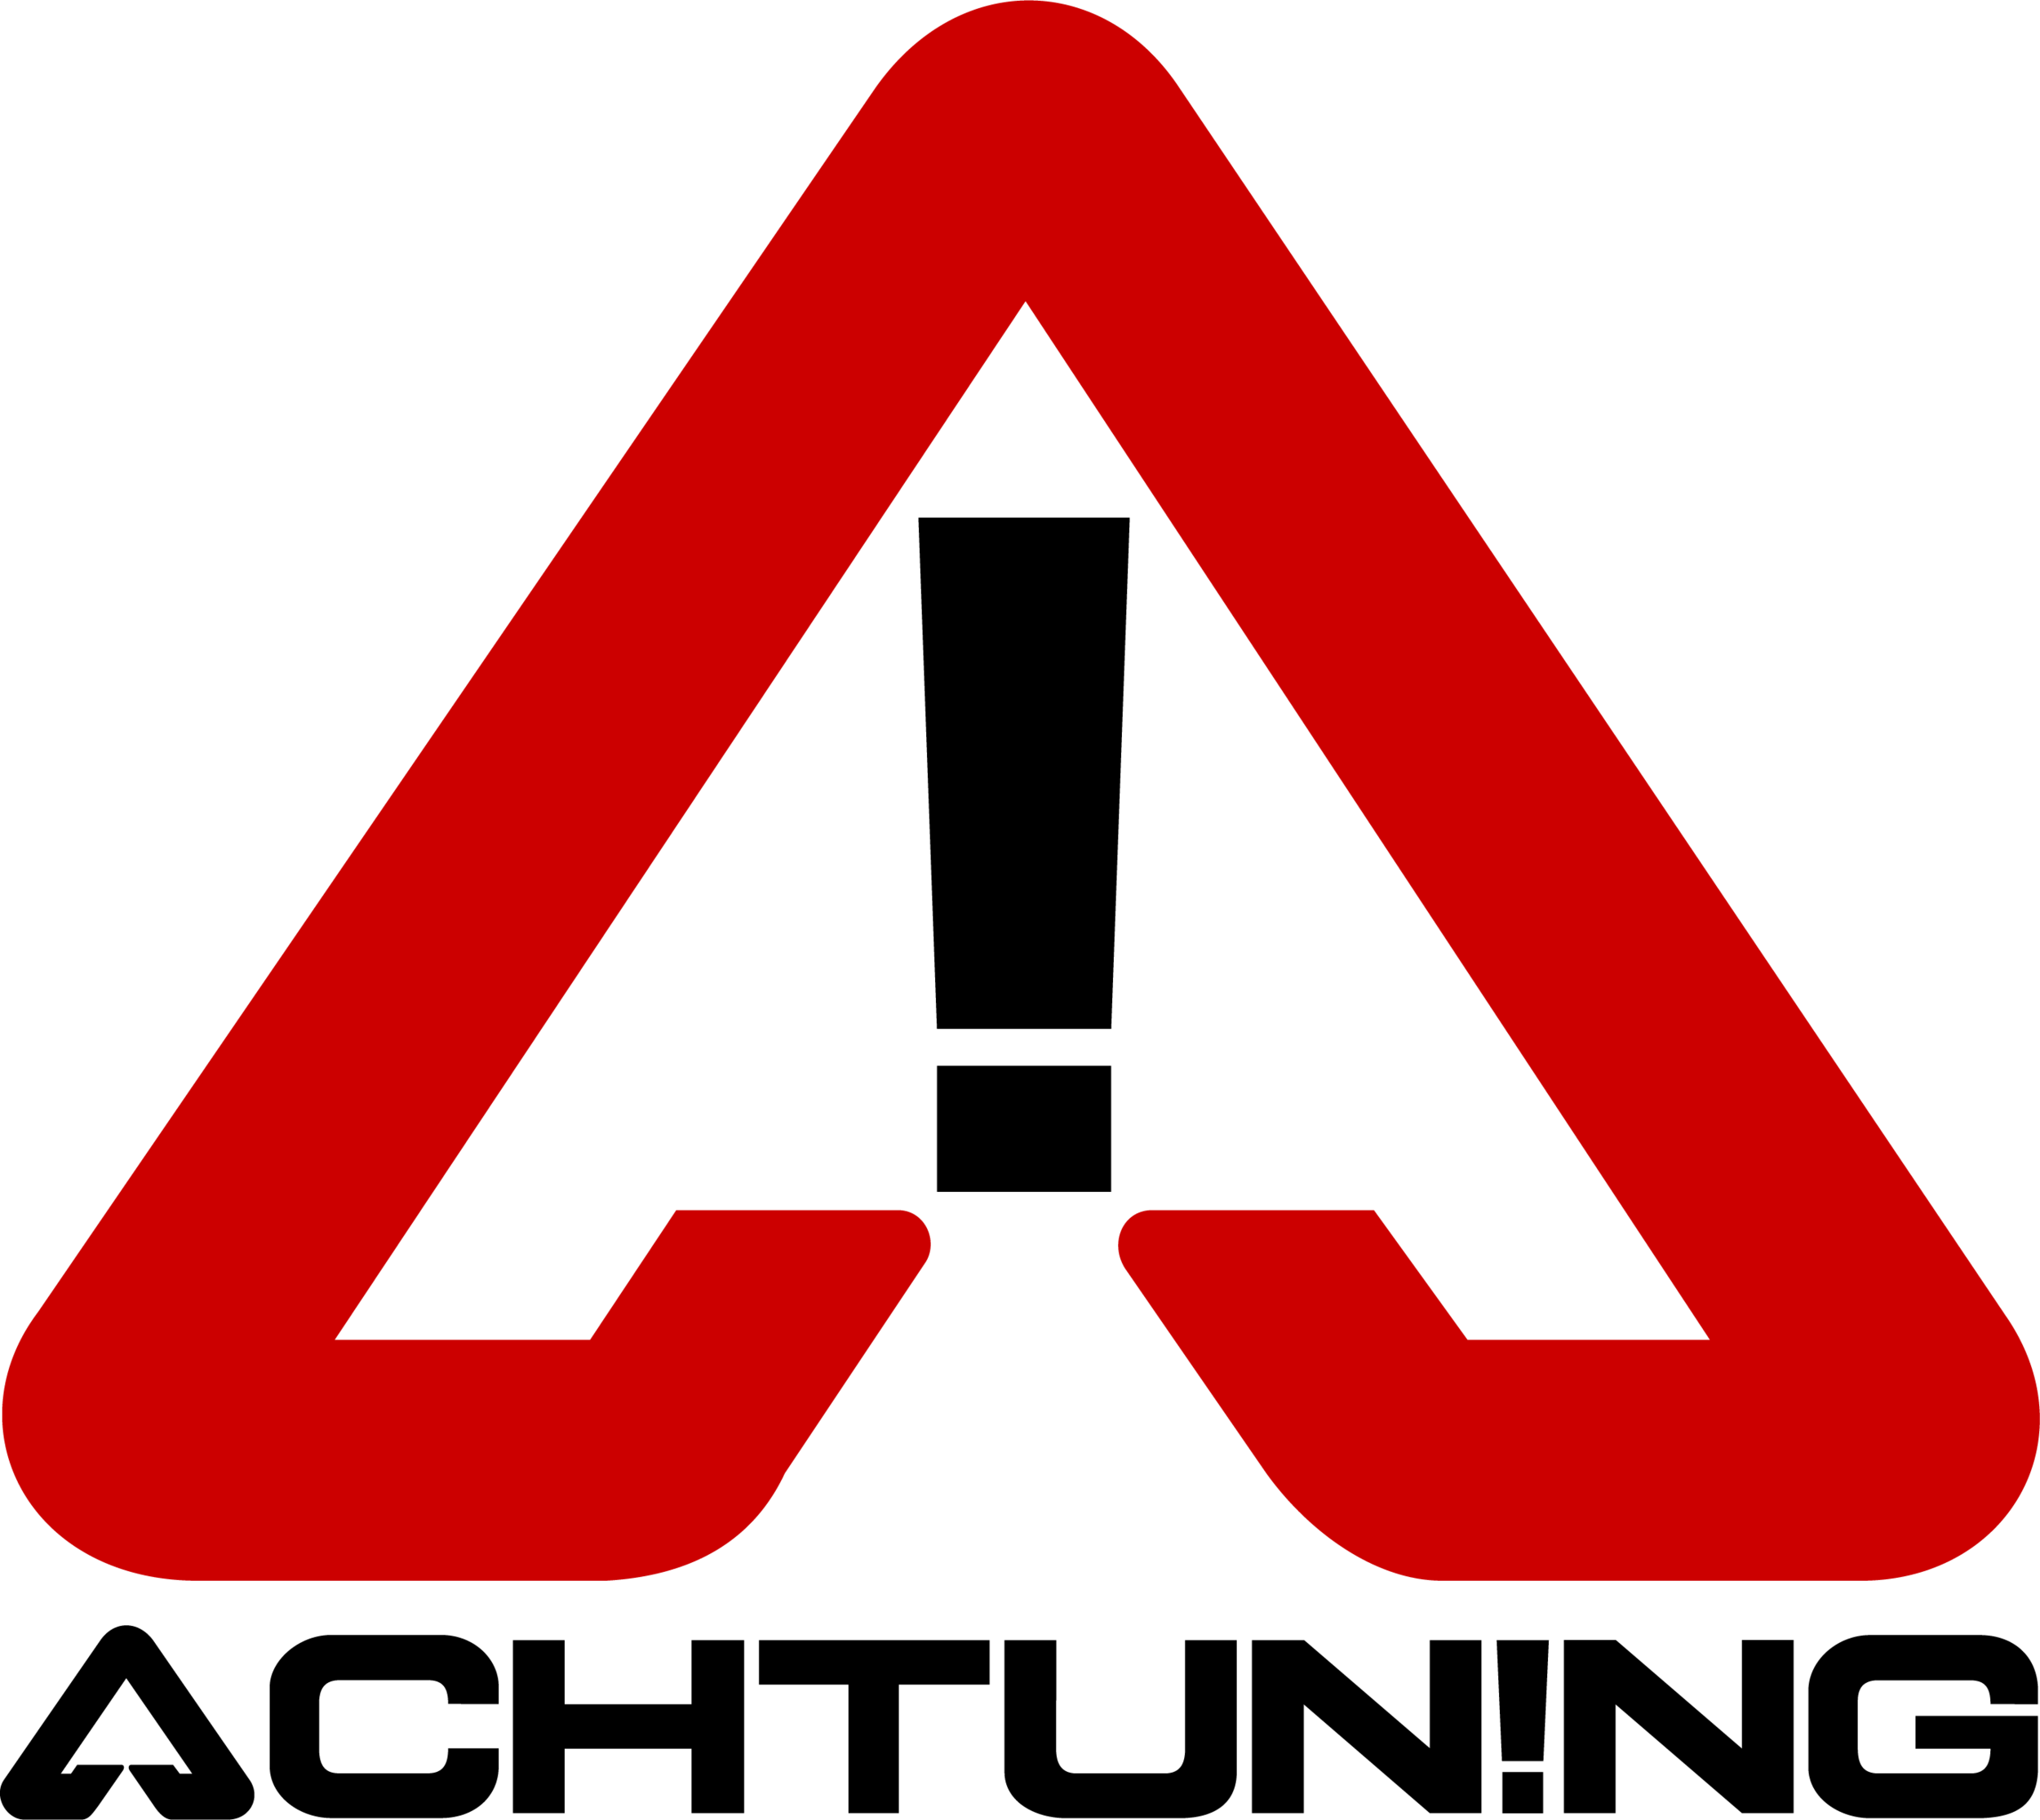 Achtuning_Triangle_Text_2011_RB_2753x2457.png